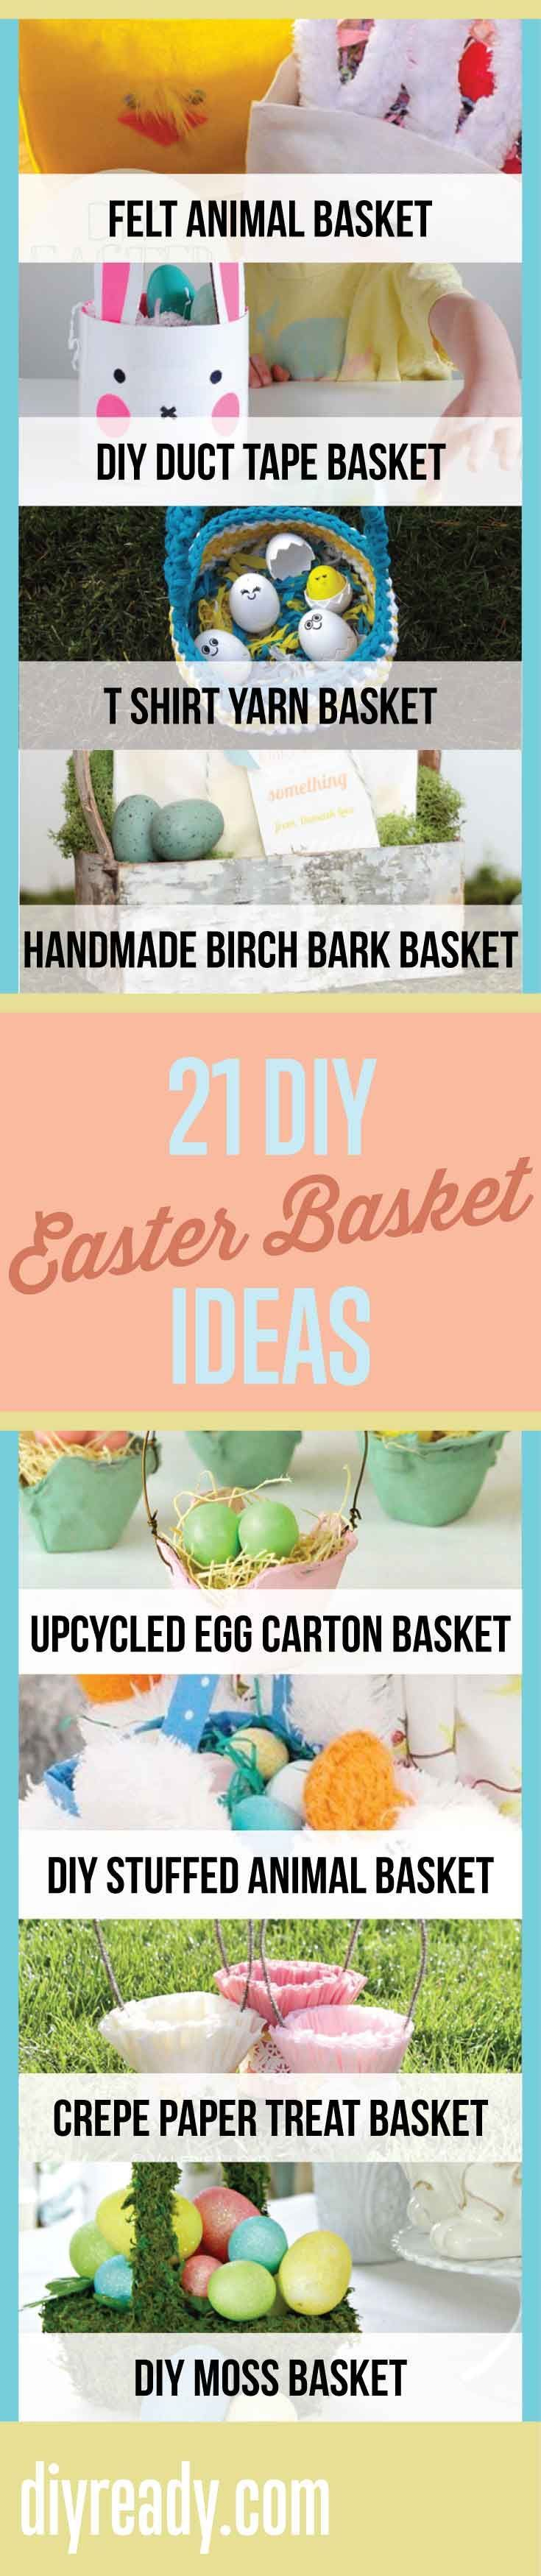 15 diy easter basket ideas that will have you hoppin basket 15 diy easter basket ideas that will have you hoppin negle Image collections